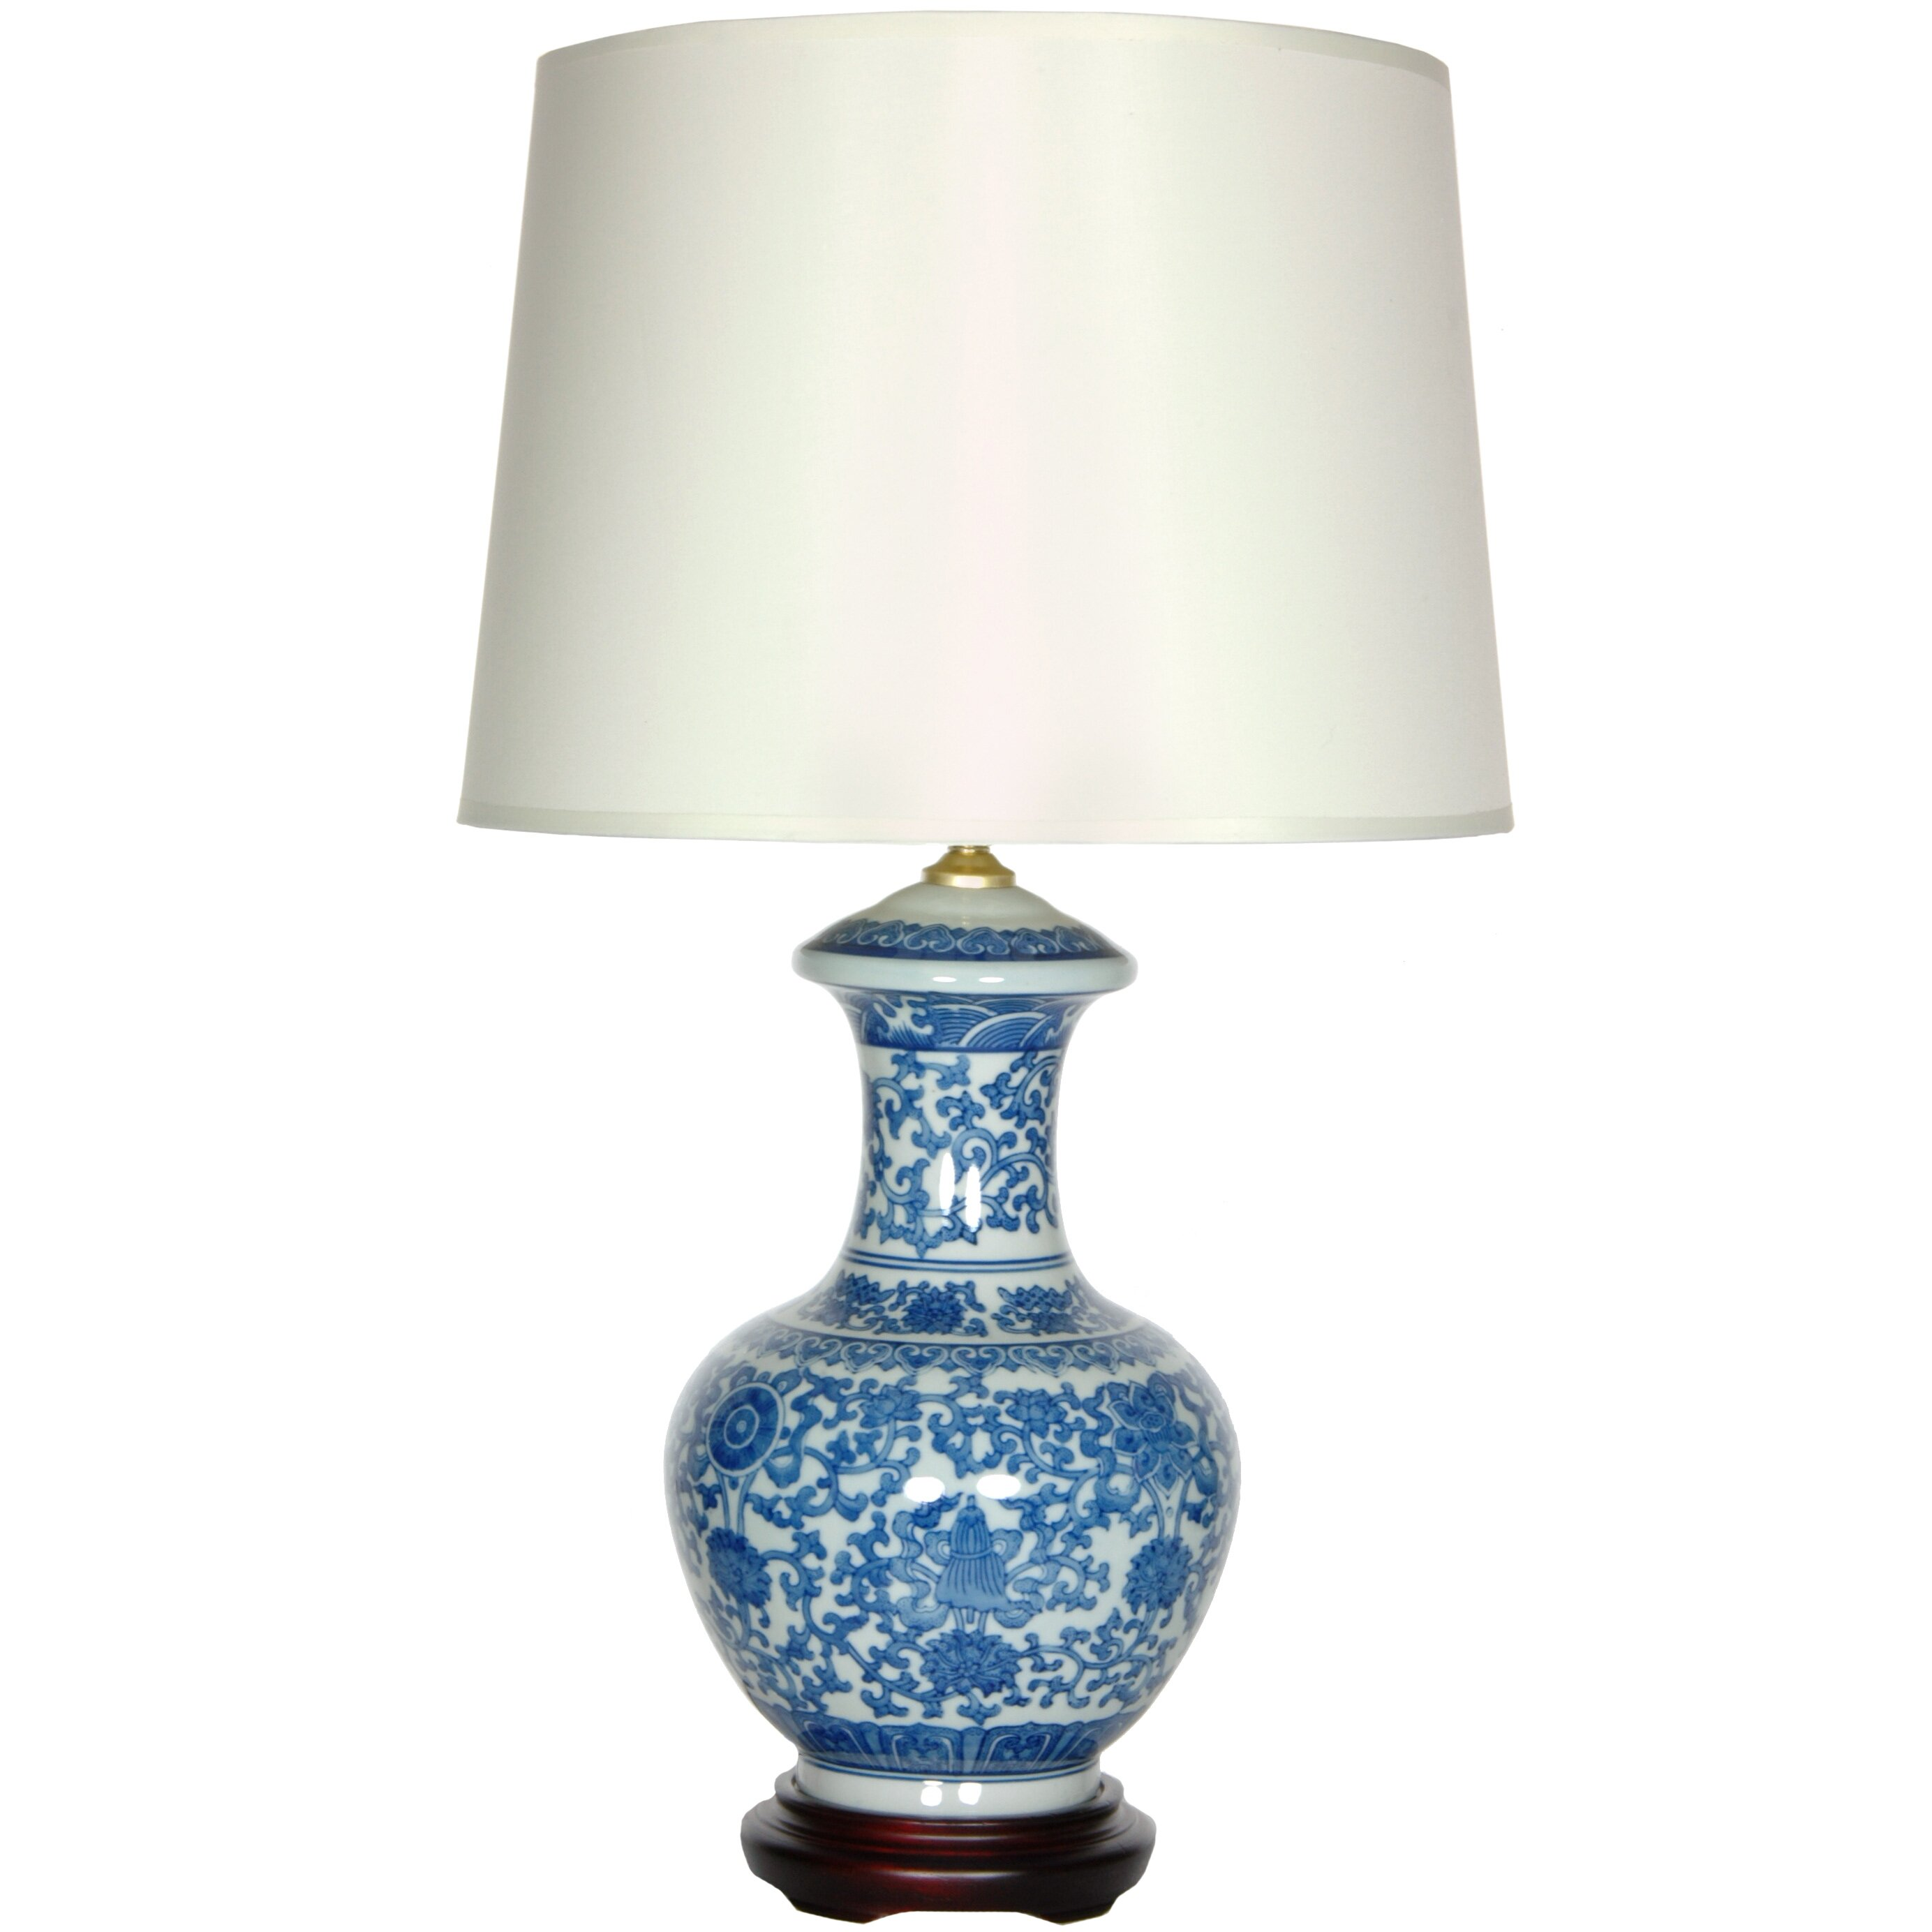 Round ceramic table lamp best inspiration for table lamp all products home decor lamps table lamps oriental furniture porcelain geotapseo Gallery